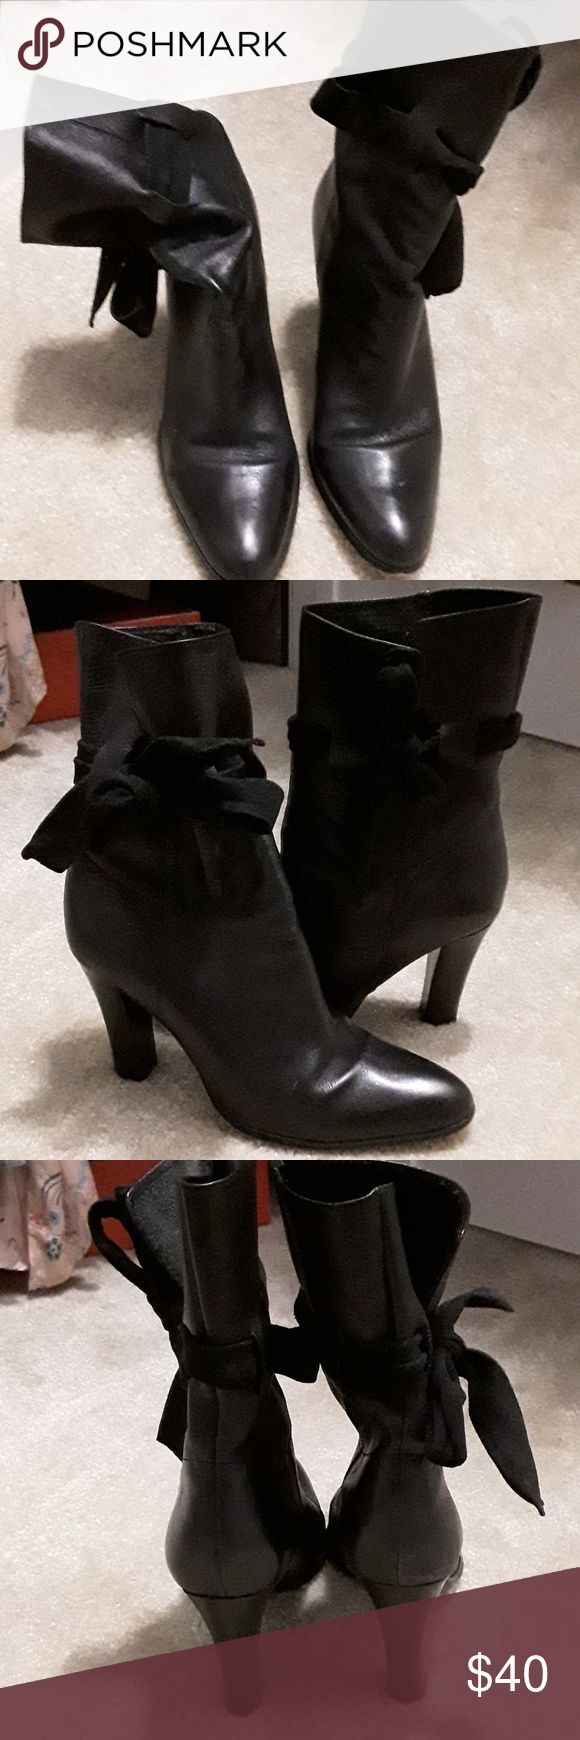 Charles by Charles David Black Leather Ankle Boots Charles by Charles David Black Leather Ankle Boots size 9 1/2 Charles David Shoes Ankle Boots & Booties